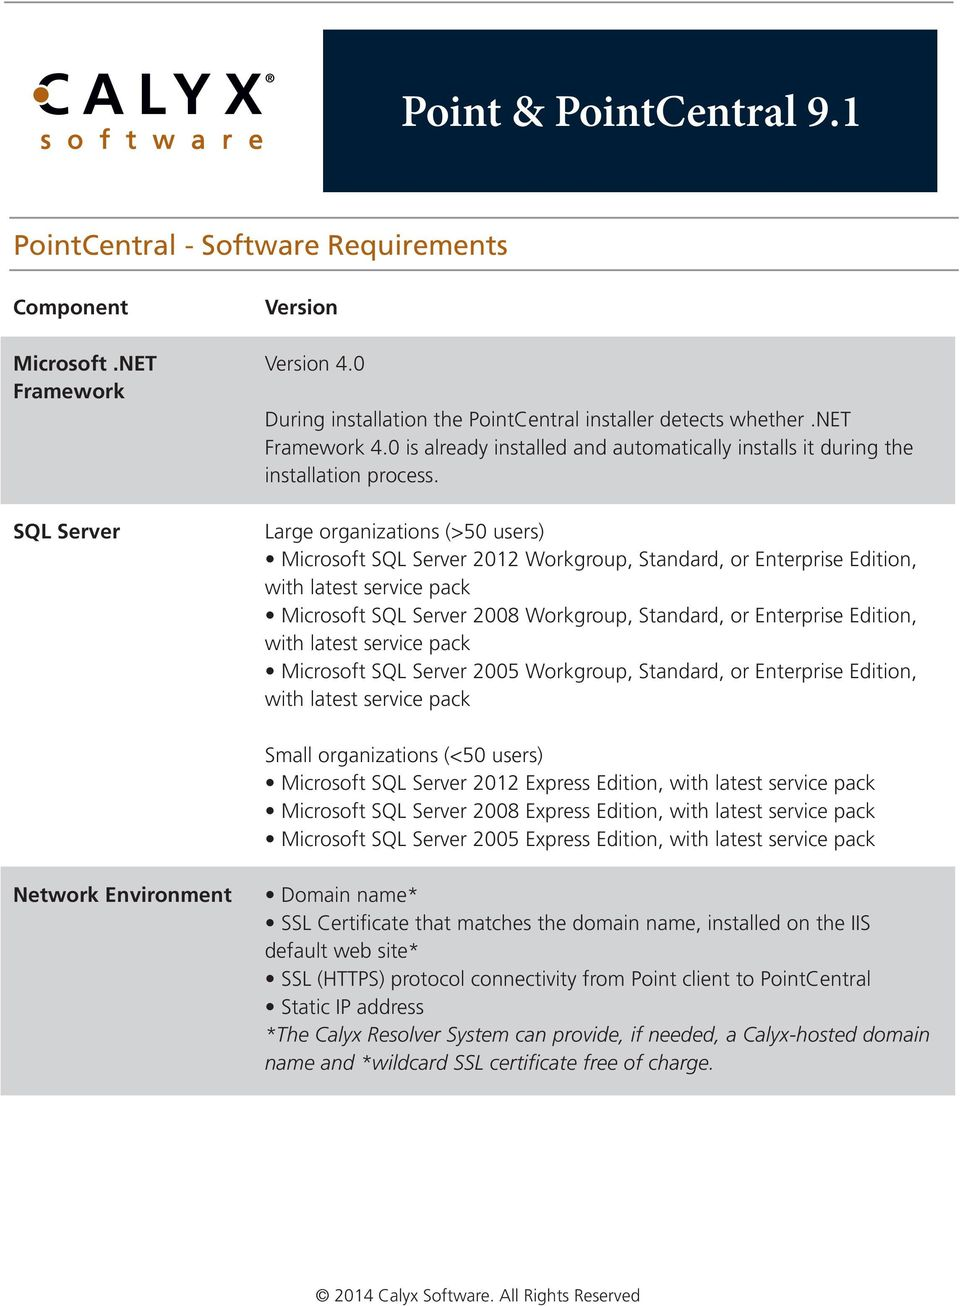 SQL Server Large organizations (>50 users) Microsoft SQL Server 2012 Workgroup, Standard, or Enterprise Edition, with latest service pack Microsoft SQL Server 2008 Workgroup, Standard, or Enterprise